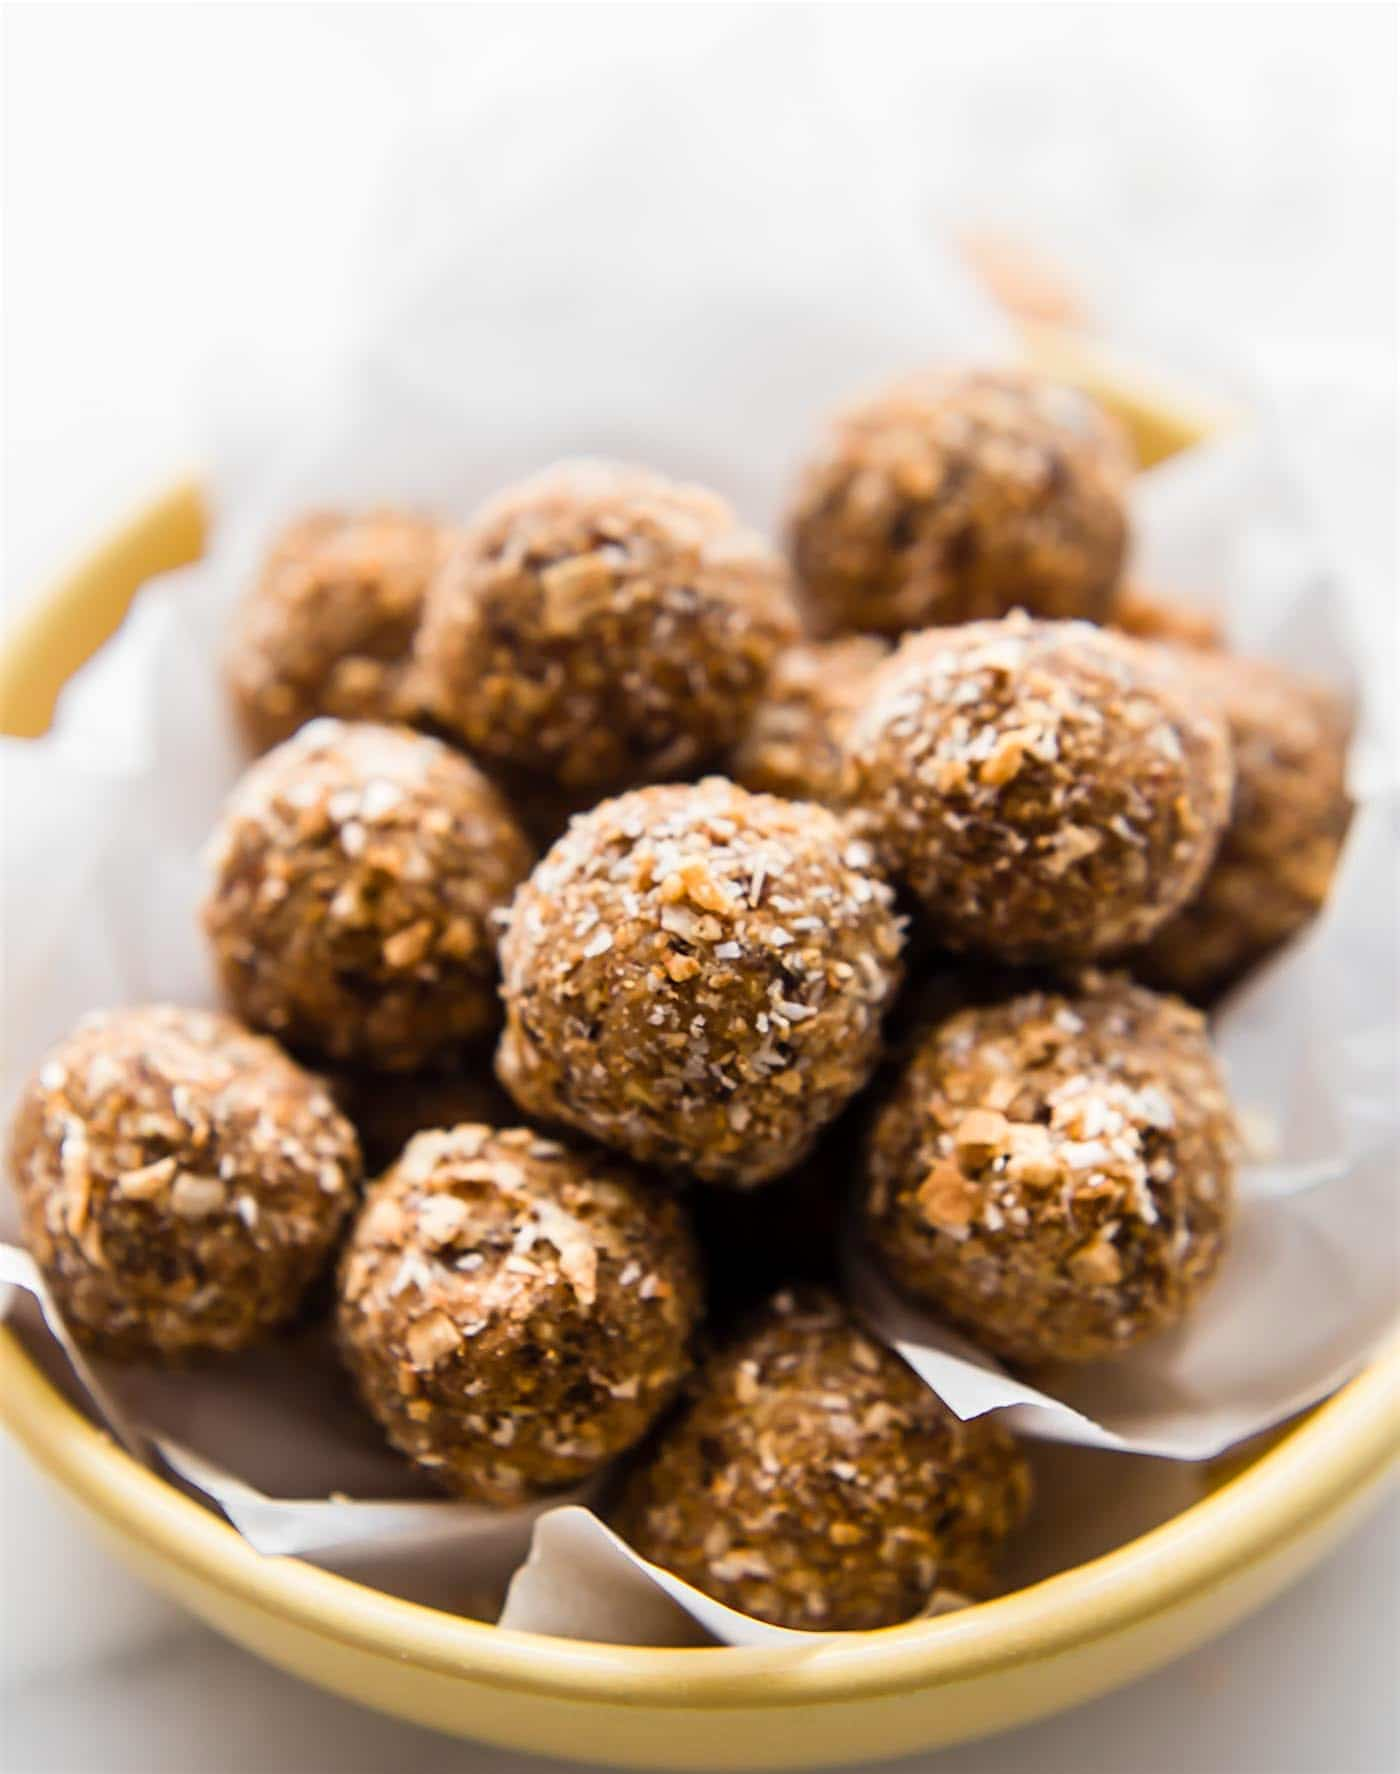 Toasted Coconut Bliss balls. A healthy sweet bliss balls recipe made with dates, cashews, cinnamon toasted coconut, and maple. An easy Paleo & vegan snack or treat.